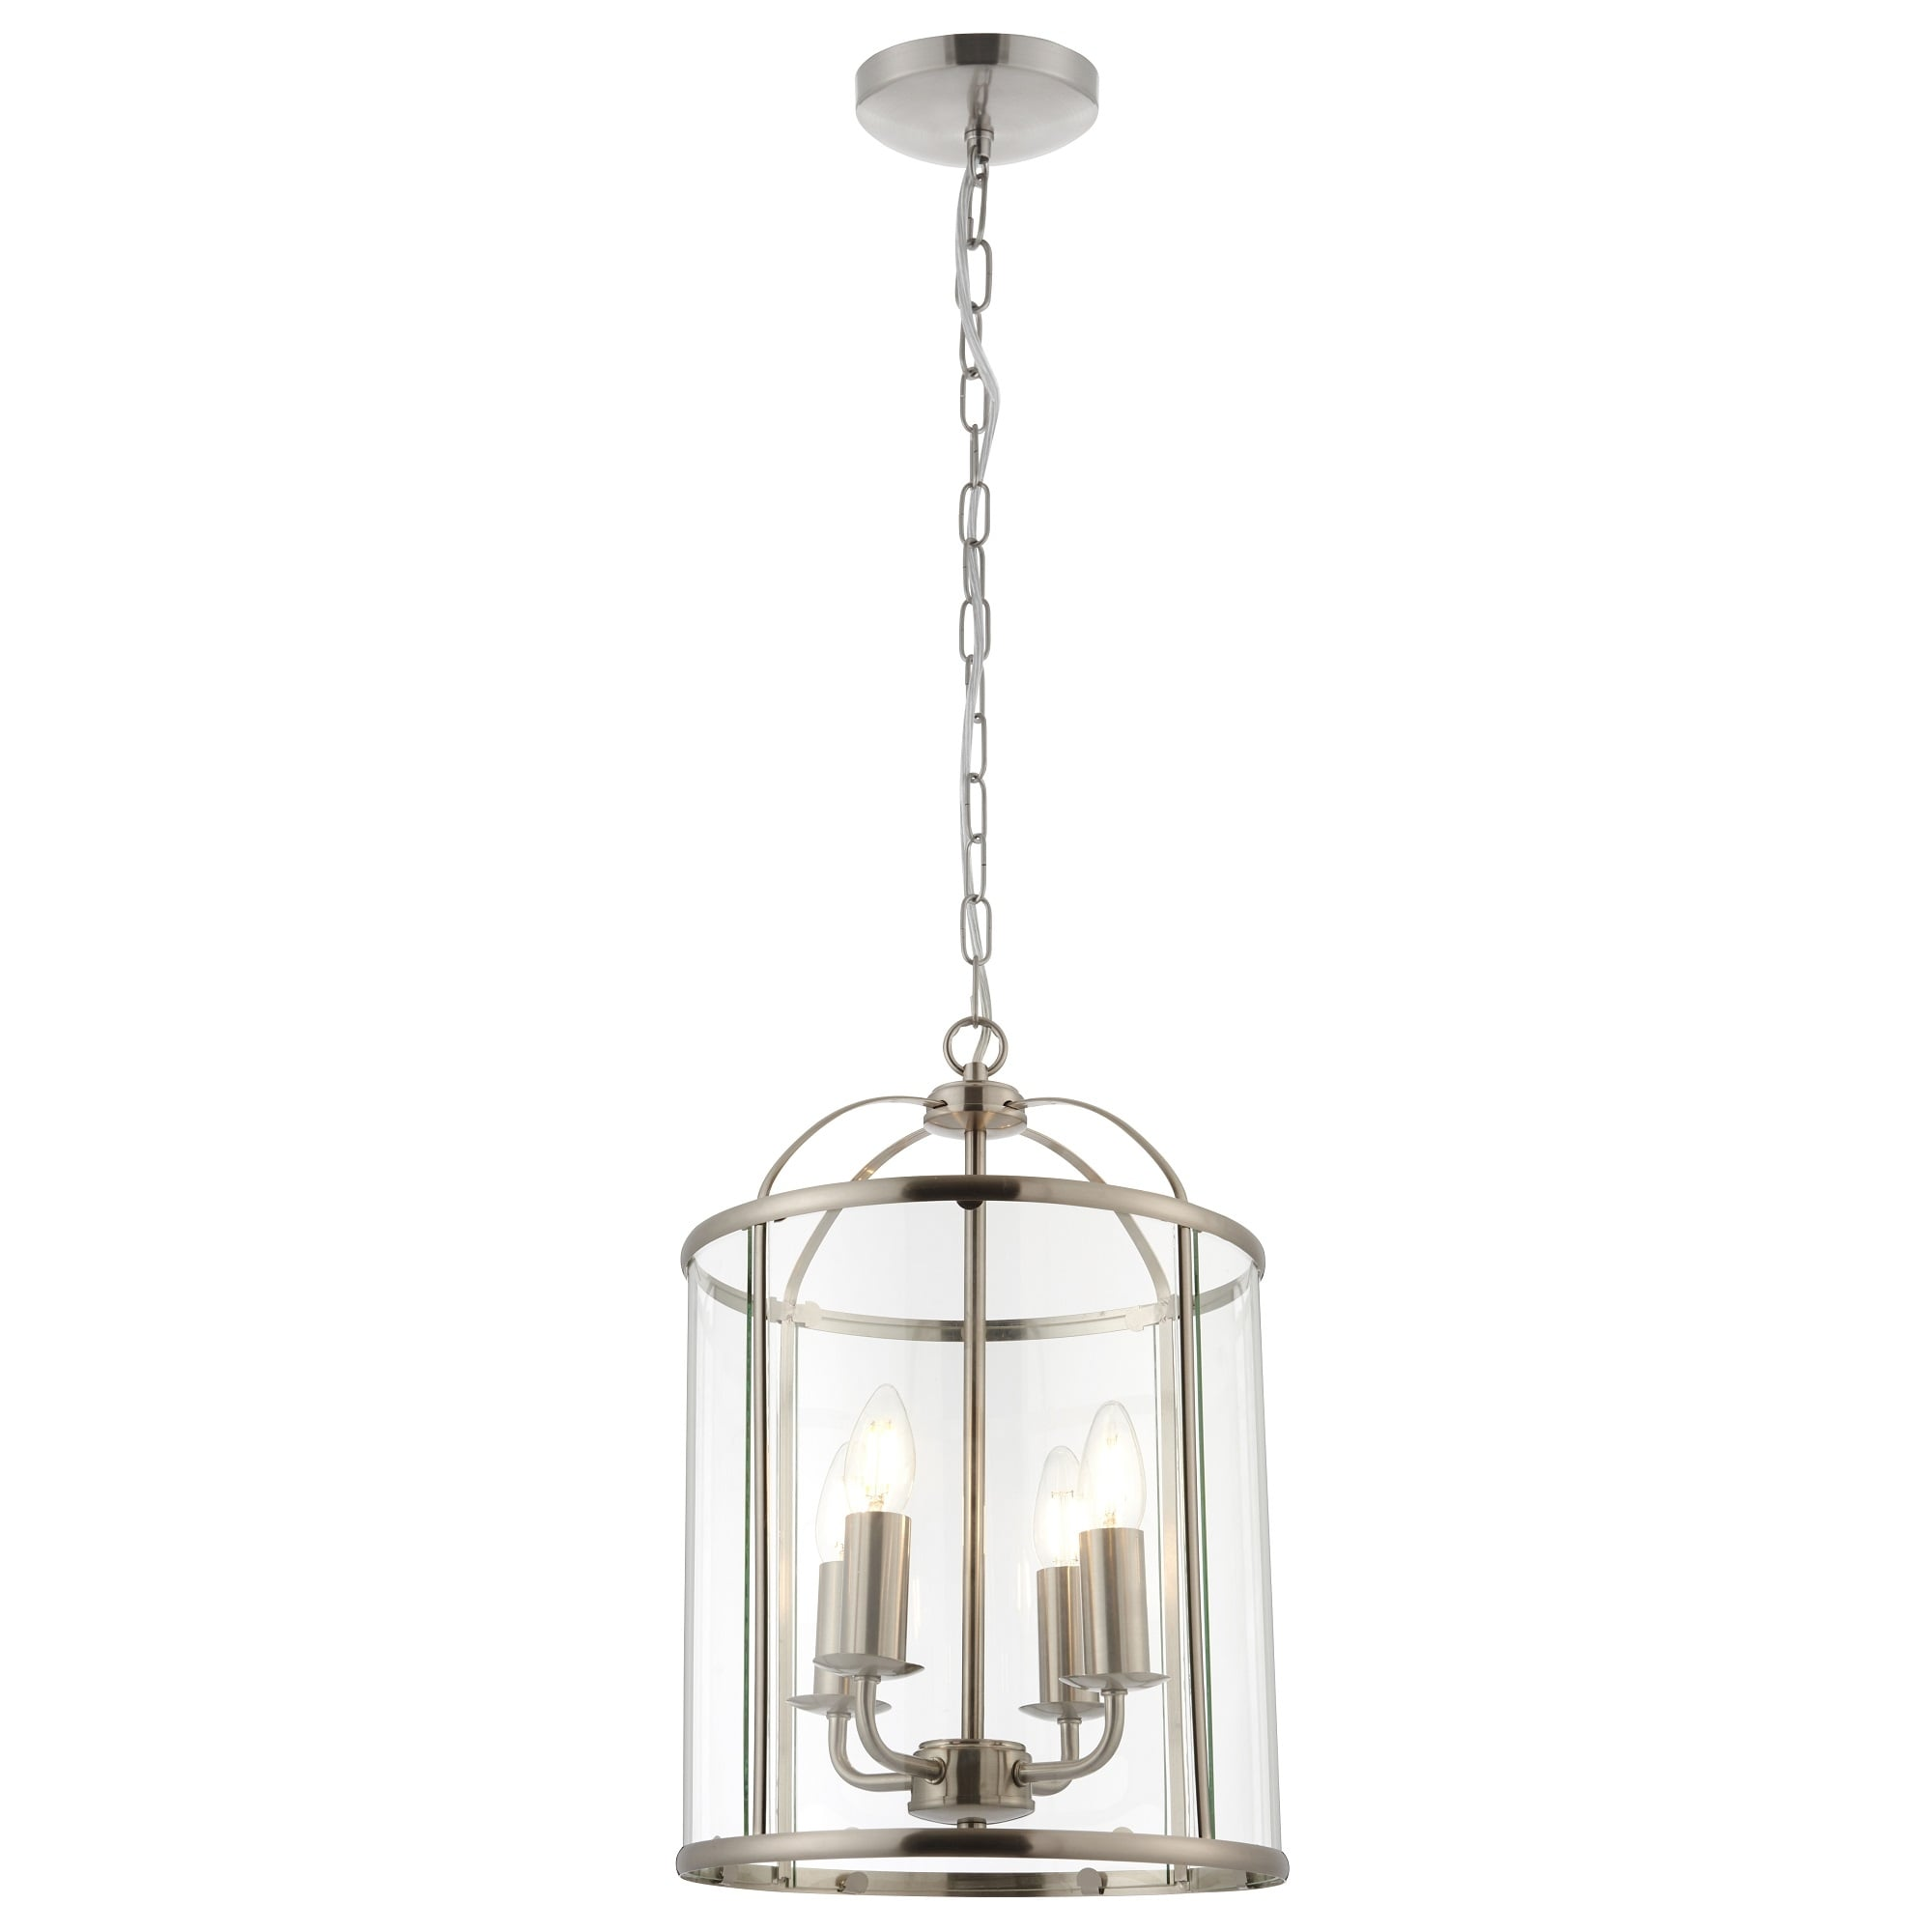 Thlc Traditional 4 Light Brushed Silver Nickel Round Hanging Hall Ceiling Lantern Lighting From The Home Lighting Centre Uk